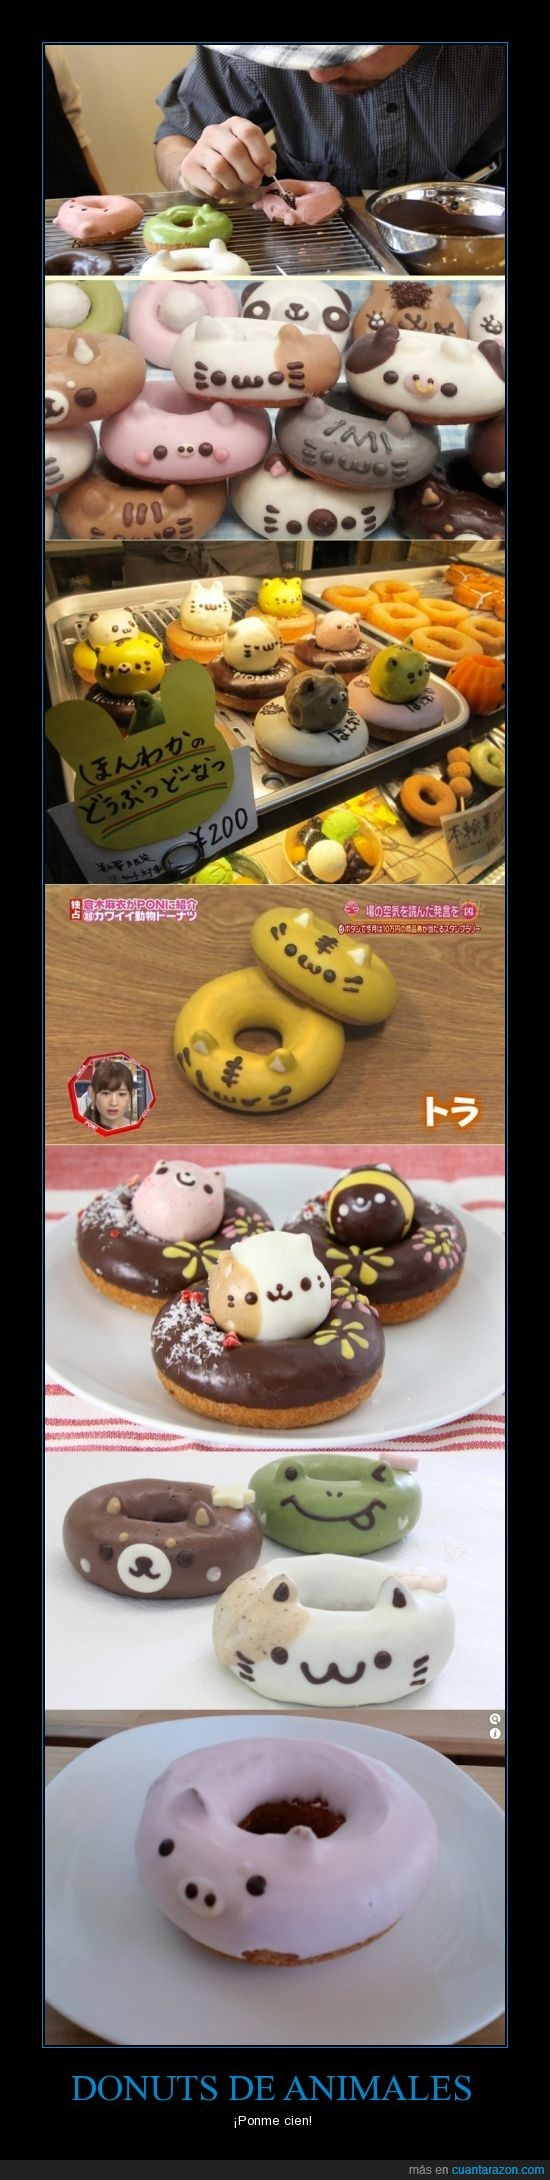 animales,donuts,frost,gato,japon,kawaii